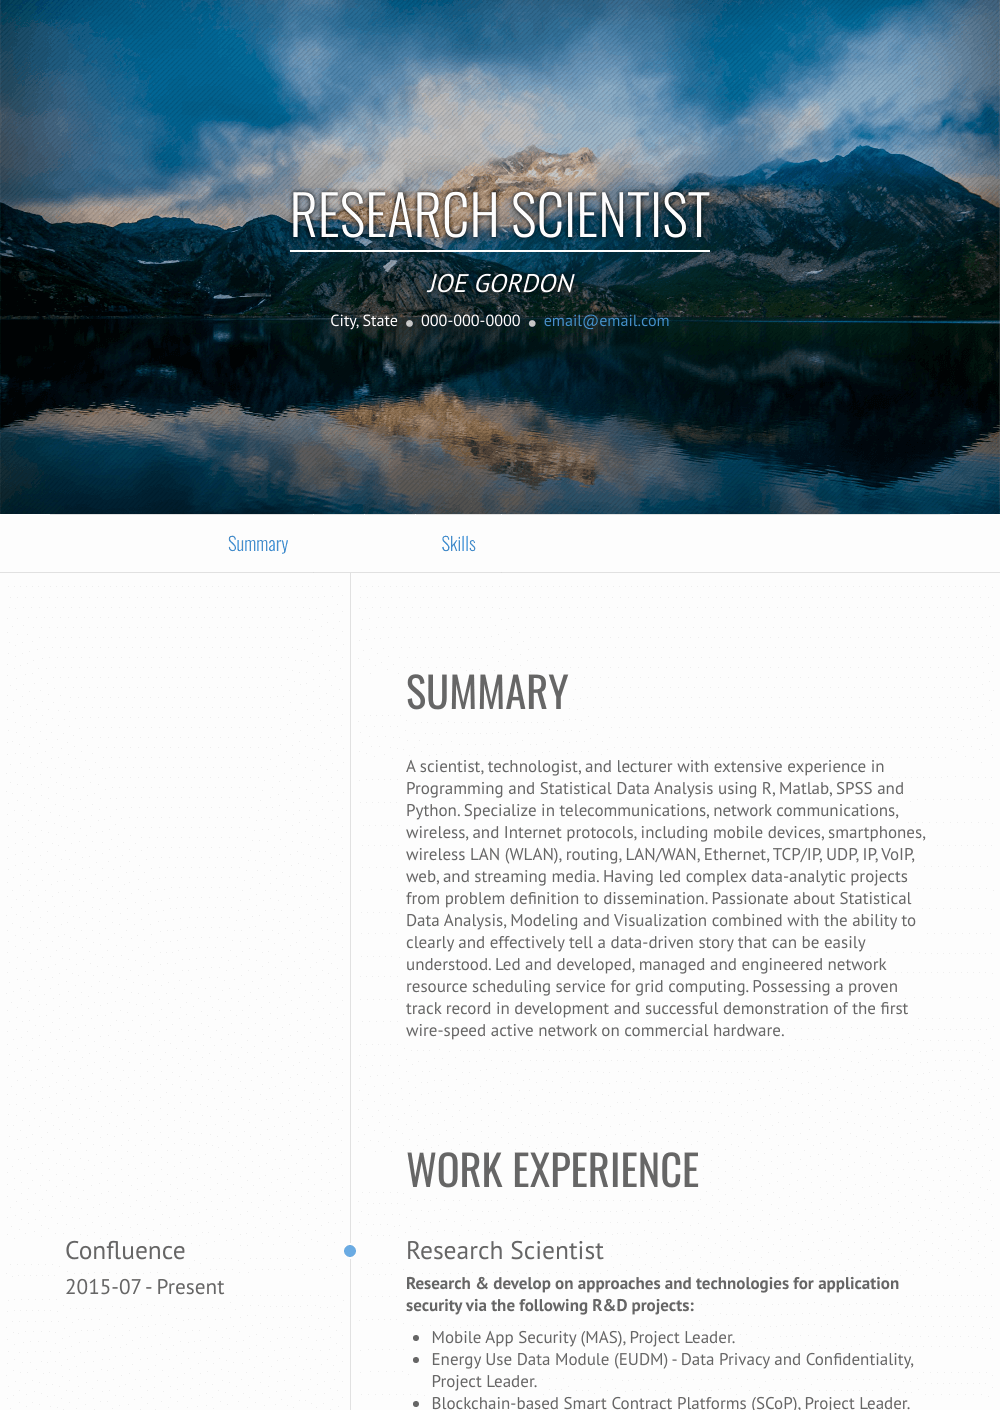 Research Scientist Resume Sample and Template